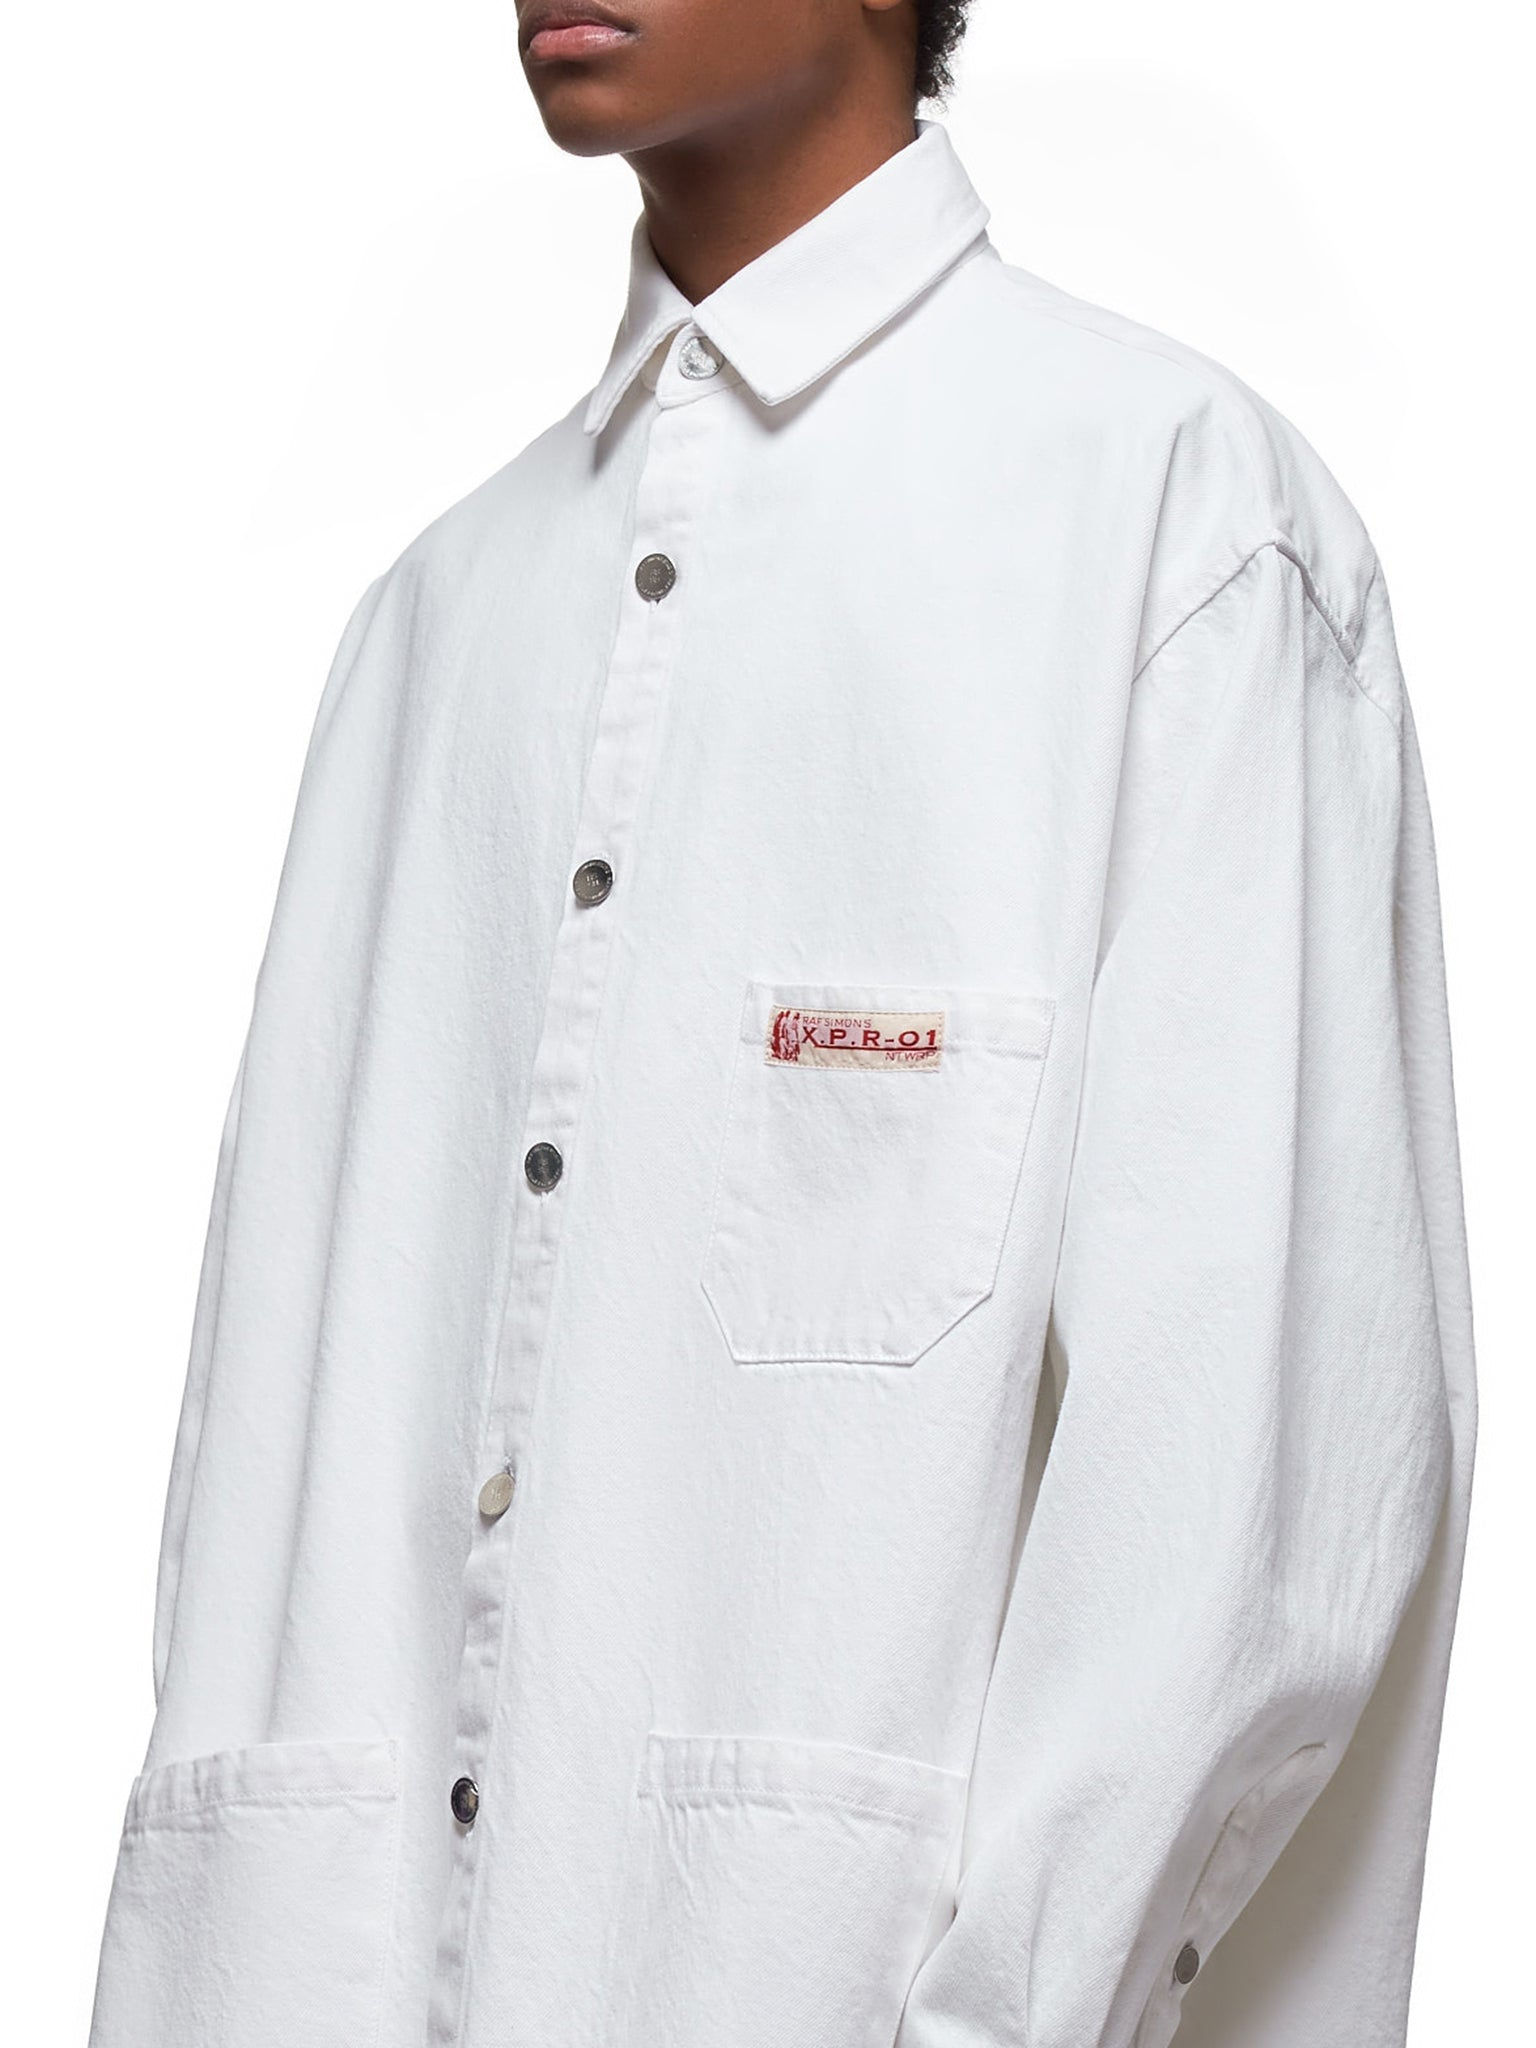 Oversized Denim Work Shirt (201-248-WHITE)